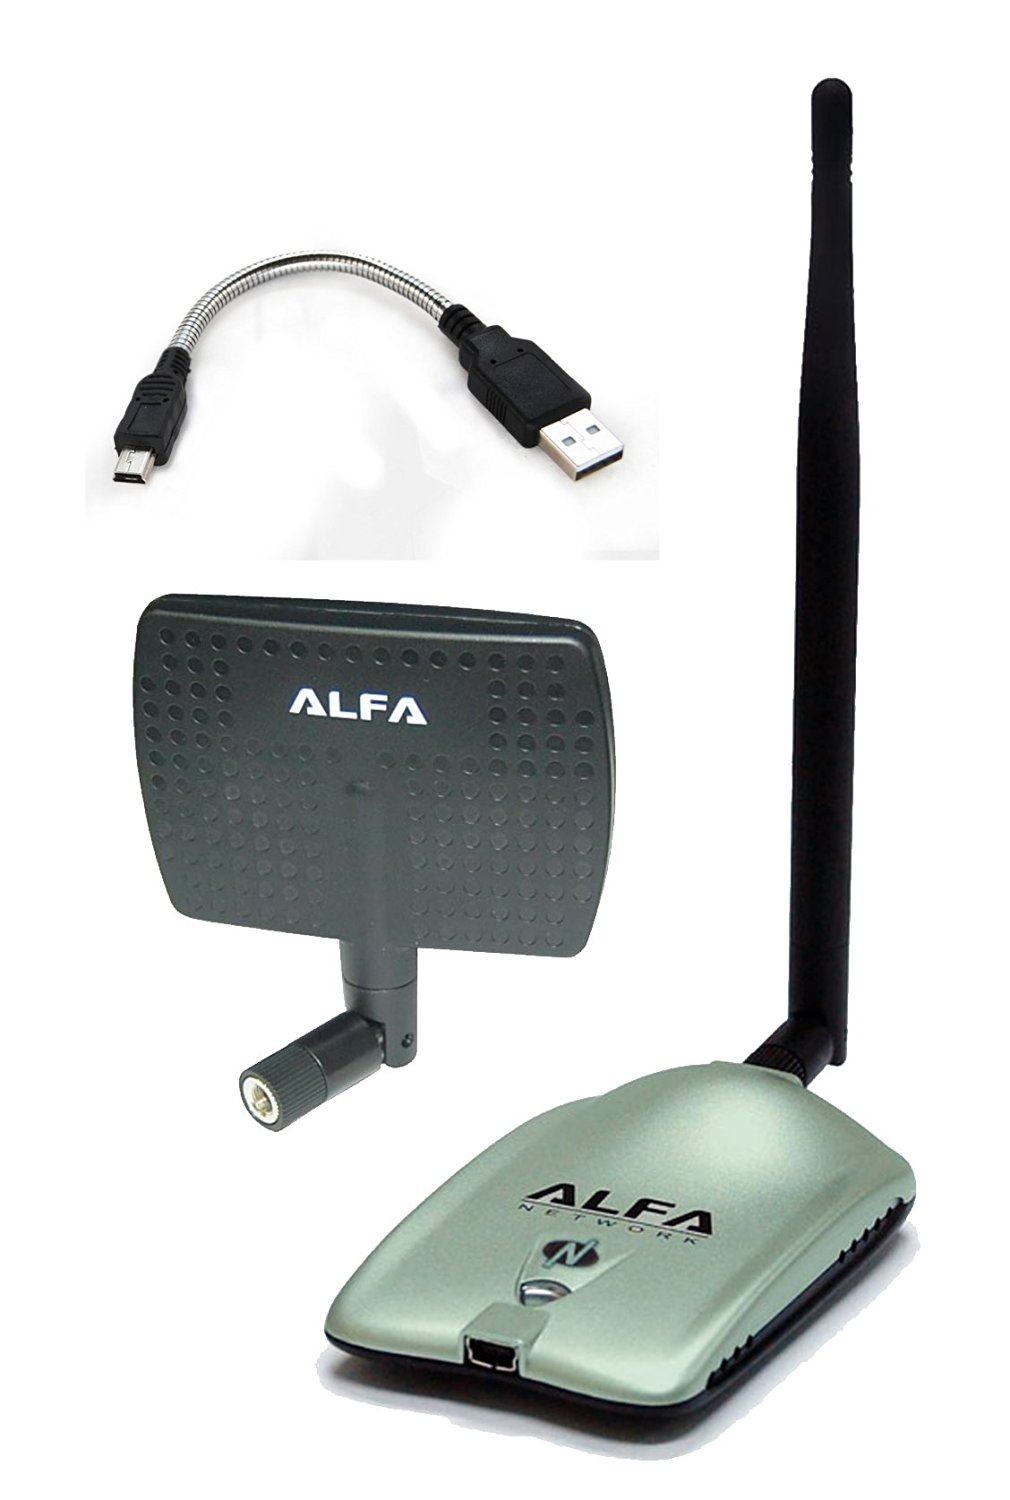 Alfa AWUS036NH 2000mW 2W 802.11g/n High Gain USB Wireless G / N Long-Range WiFi Network Adapter with 5dBi Screw-On Swivel Rubber Antenna and 7dBi Panel Antenna and Mini bendable Flex cable